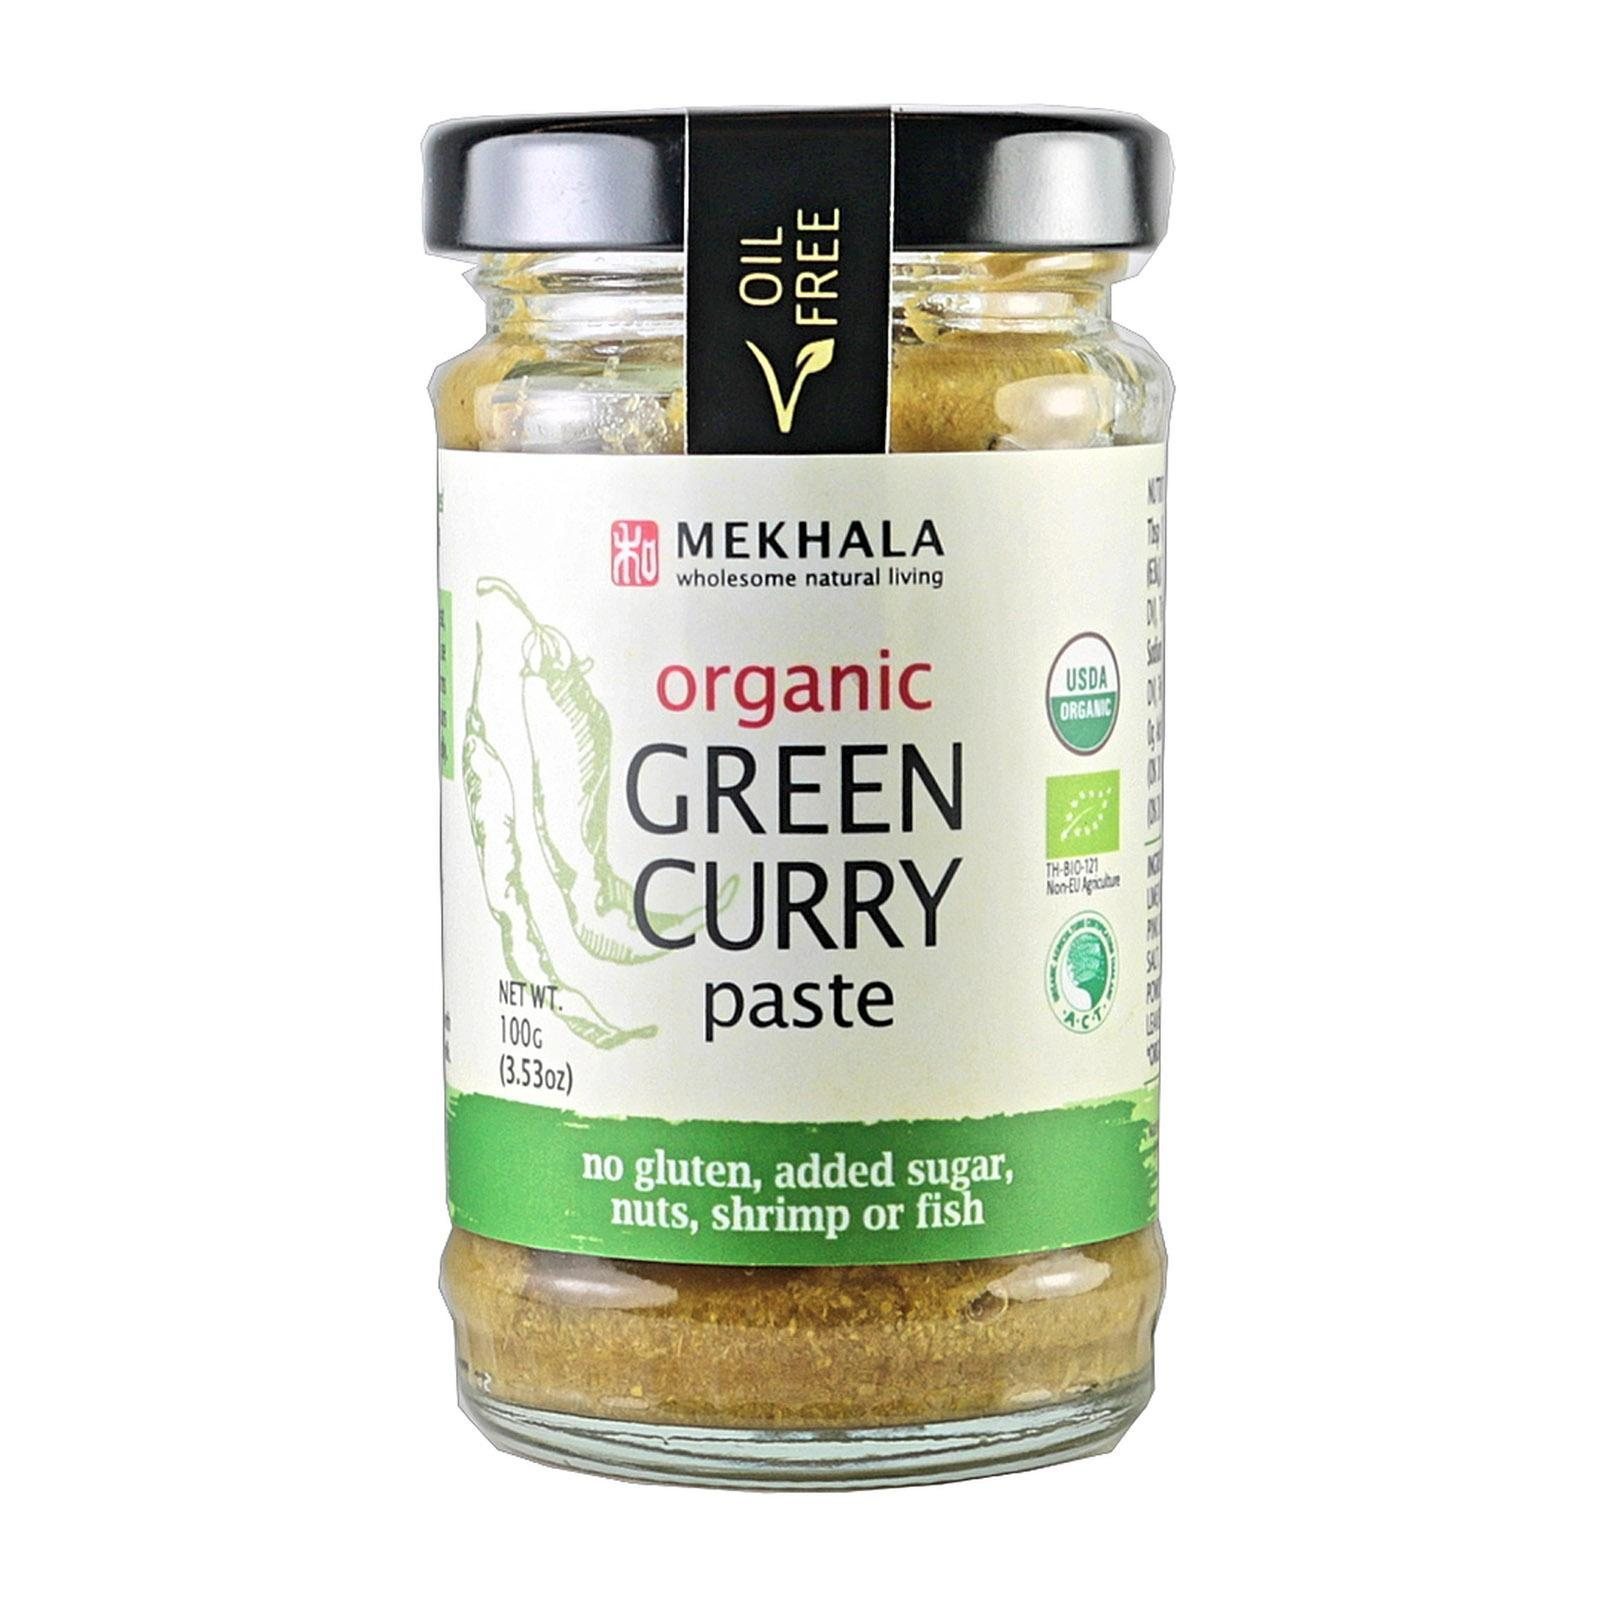 Mekhala Organic (all-Natural) Thai Green Curry Paste By Redmart.